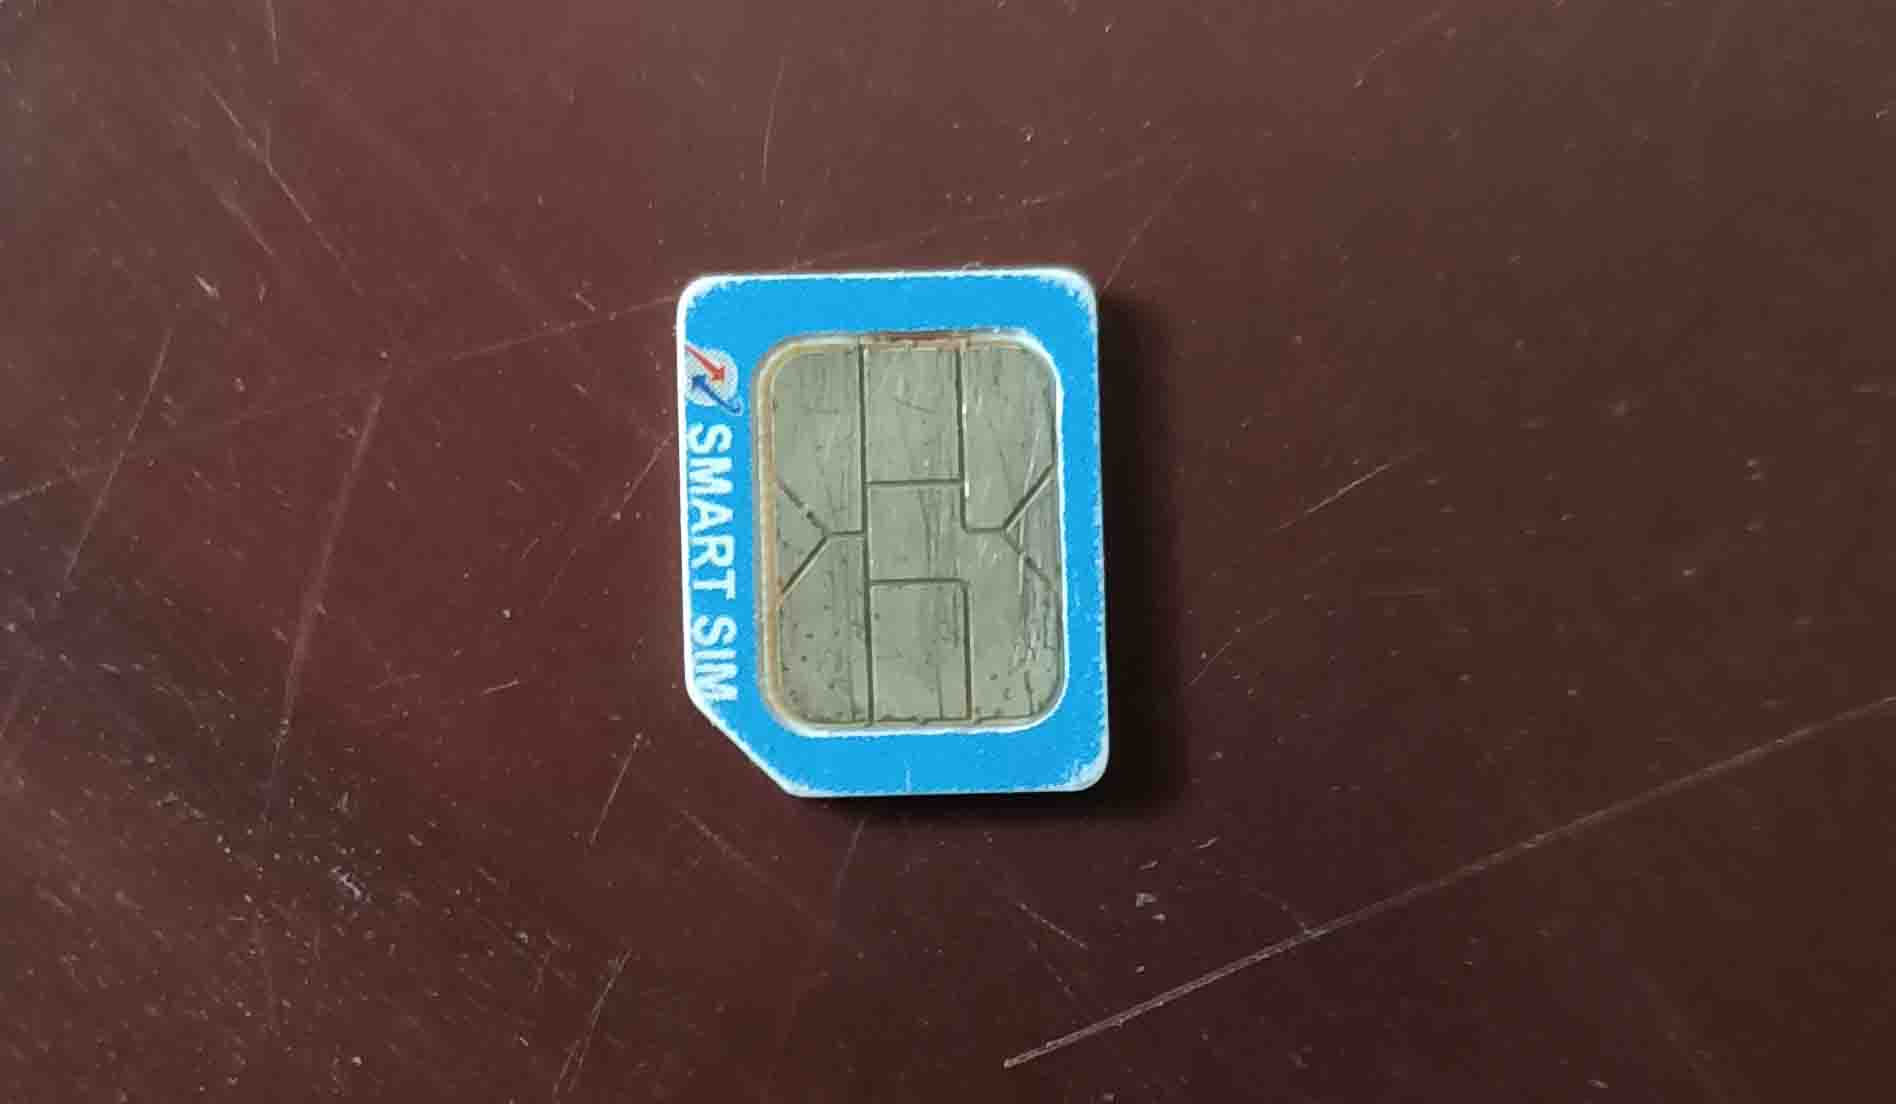 Re-insert Your SIM Card